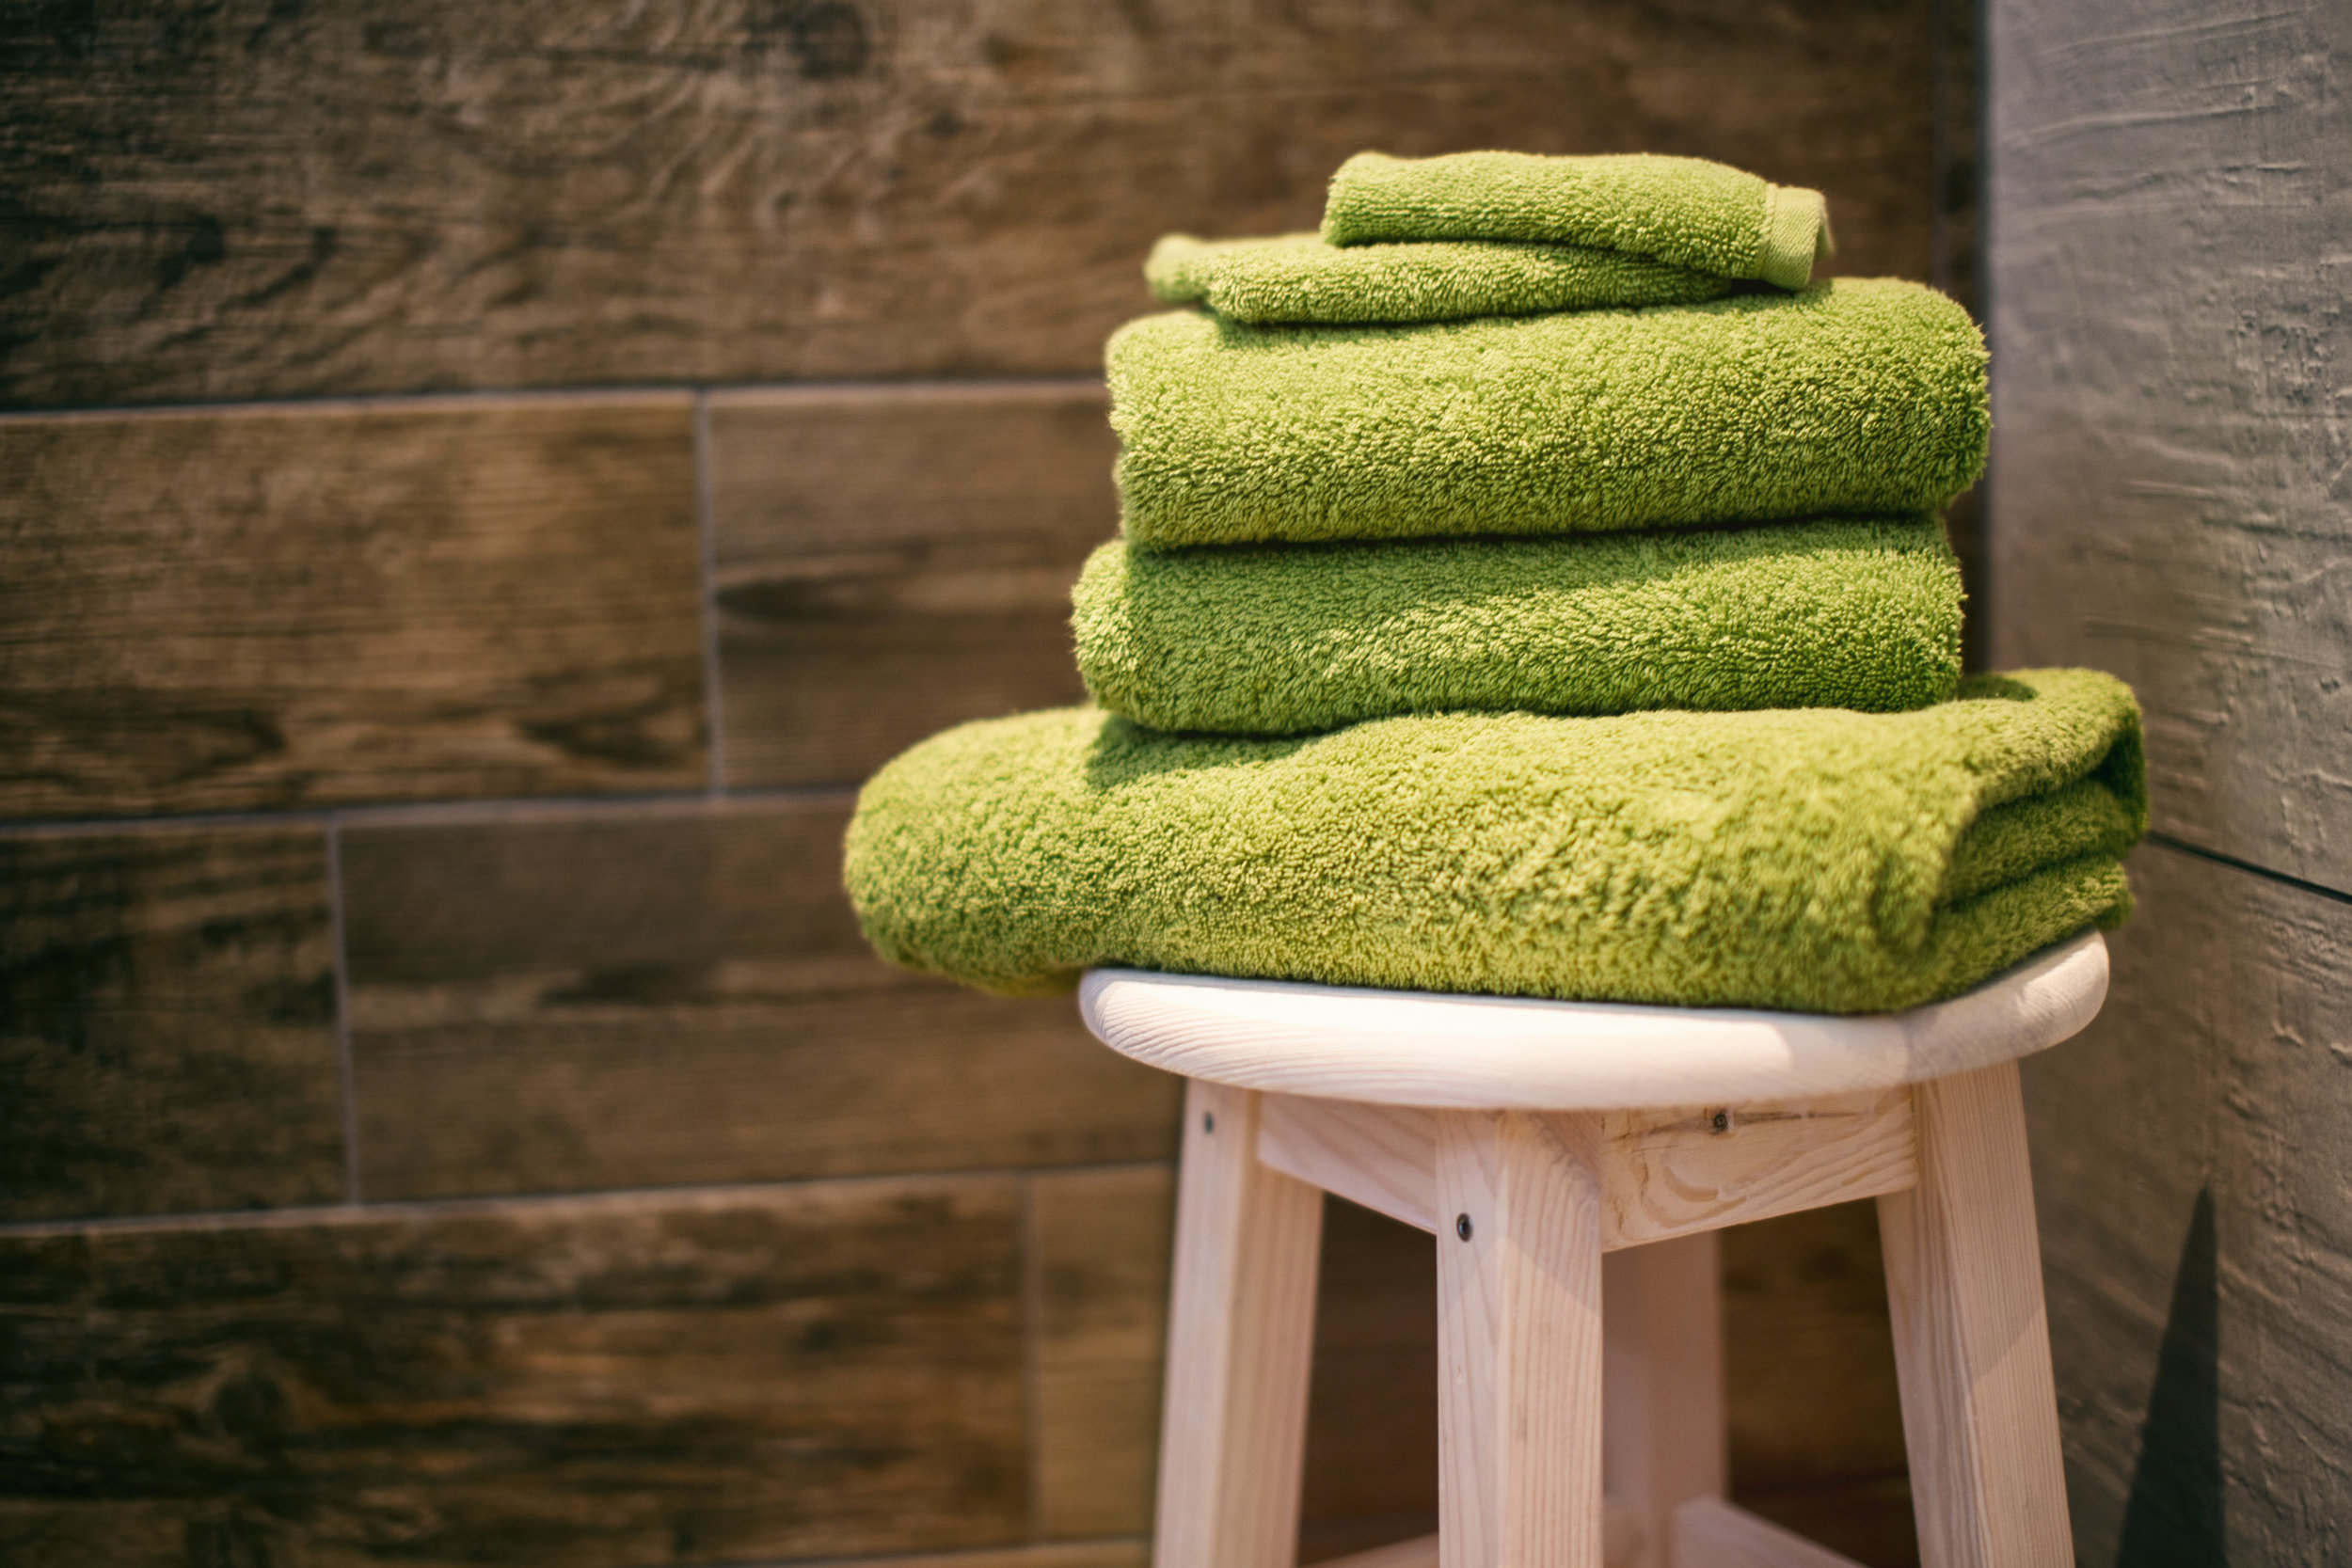 Towels.Bamboo.Alternative.Organic.Natural.Environmentally.Friendly.Eco.Green.Sustainable.jpg